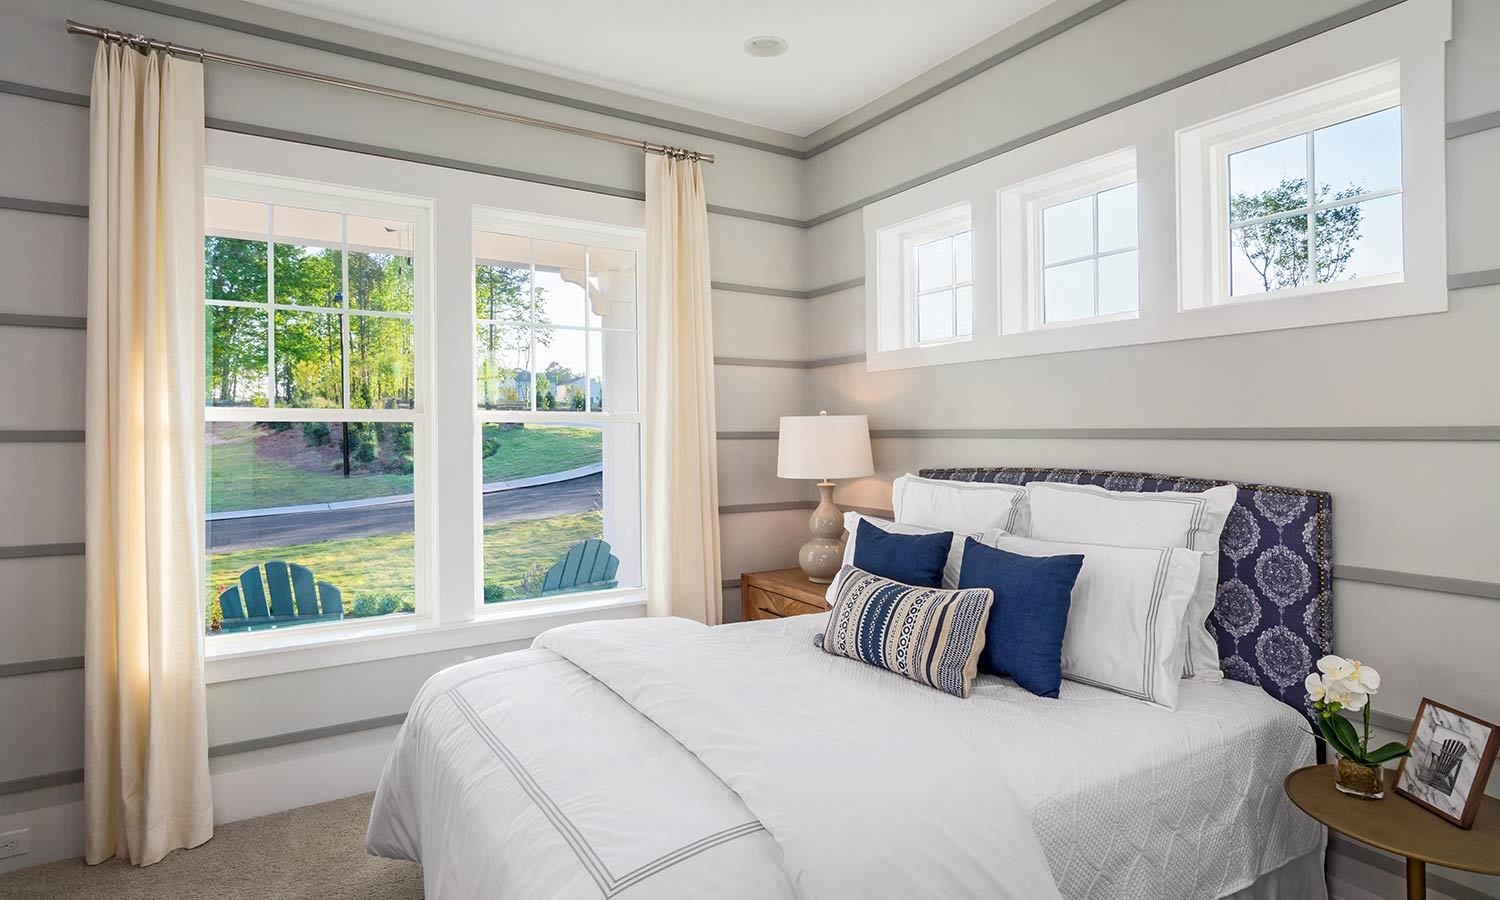 Bedroom featured in The Enthusiast By Elevate Homes in York, PA